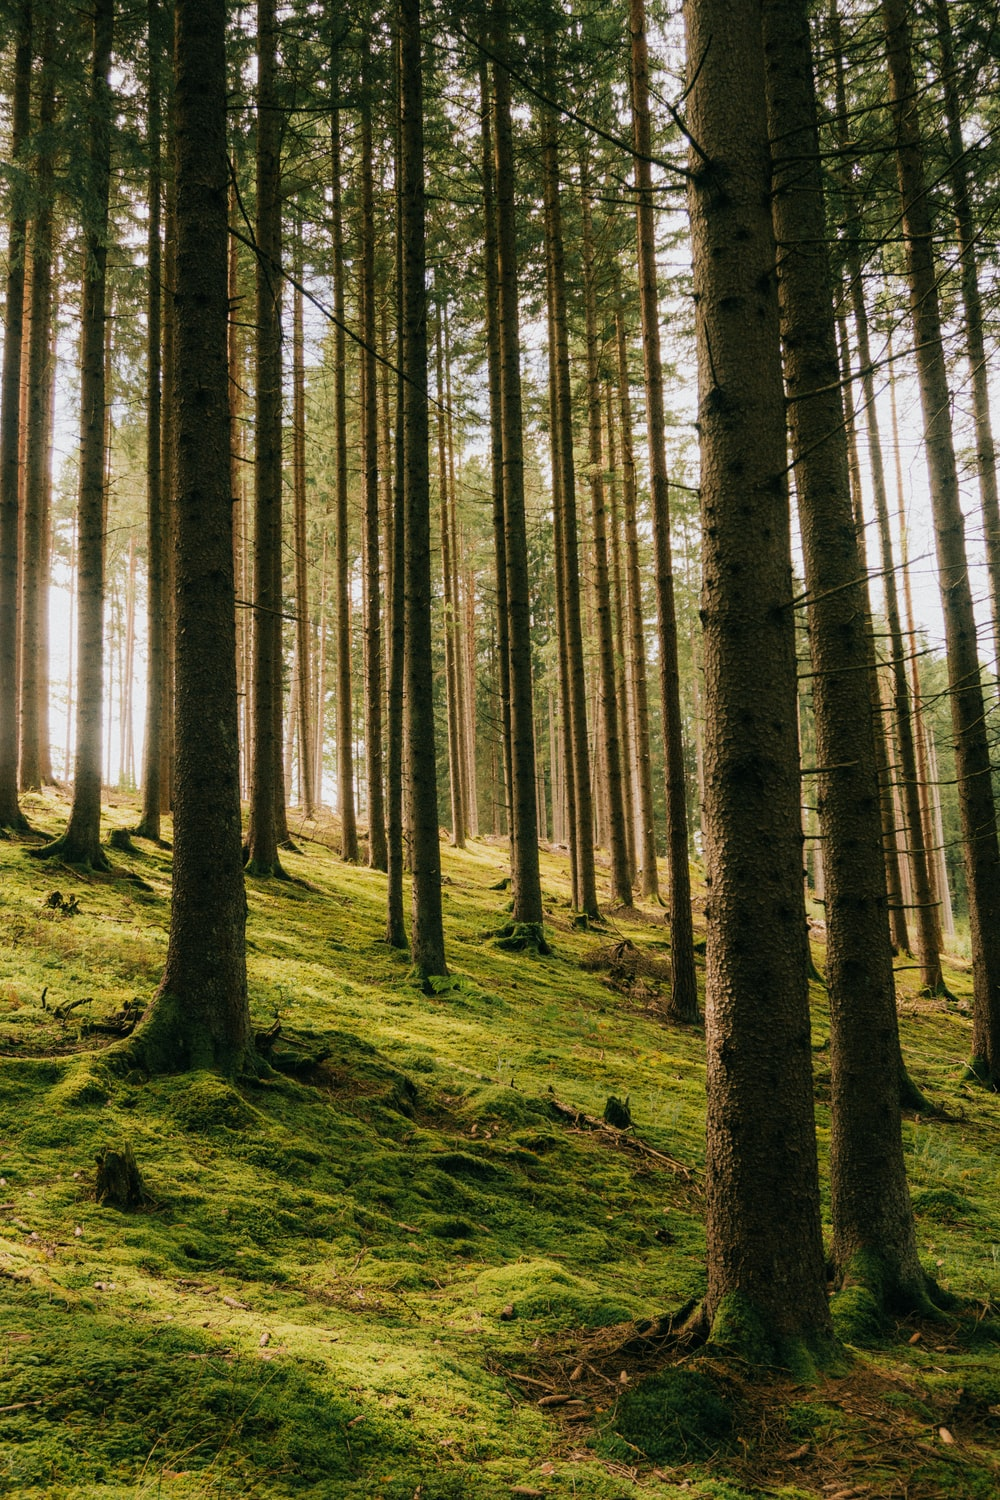 green leafed forest trees